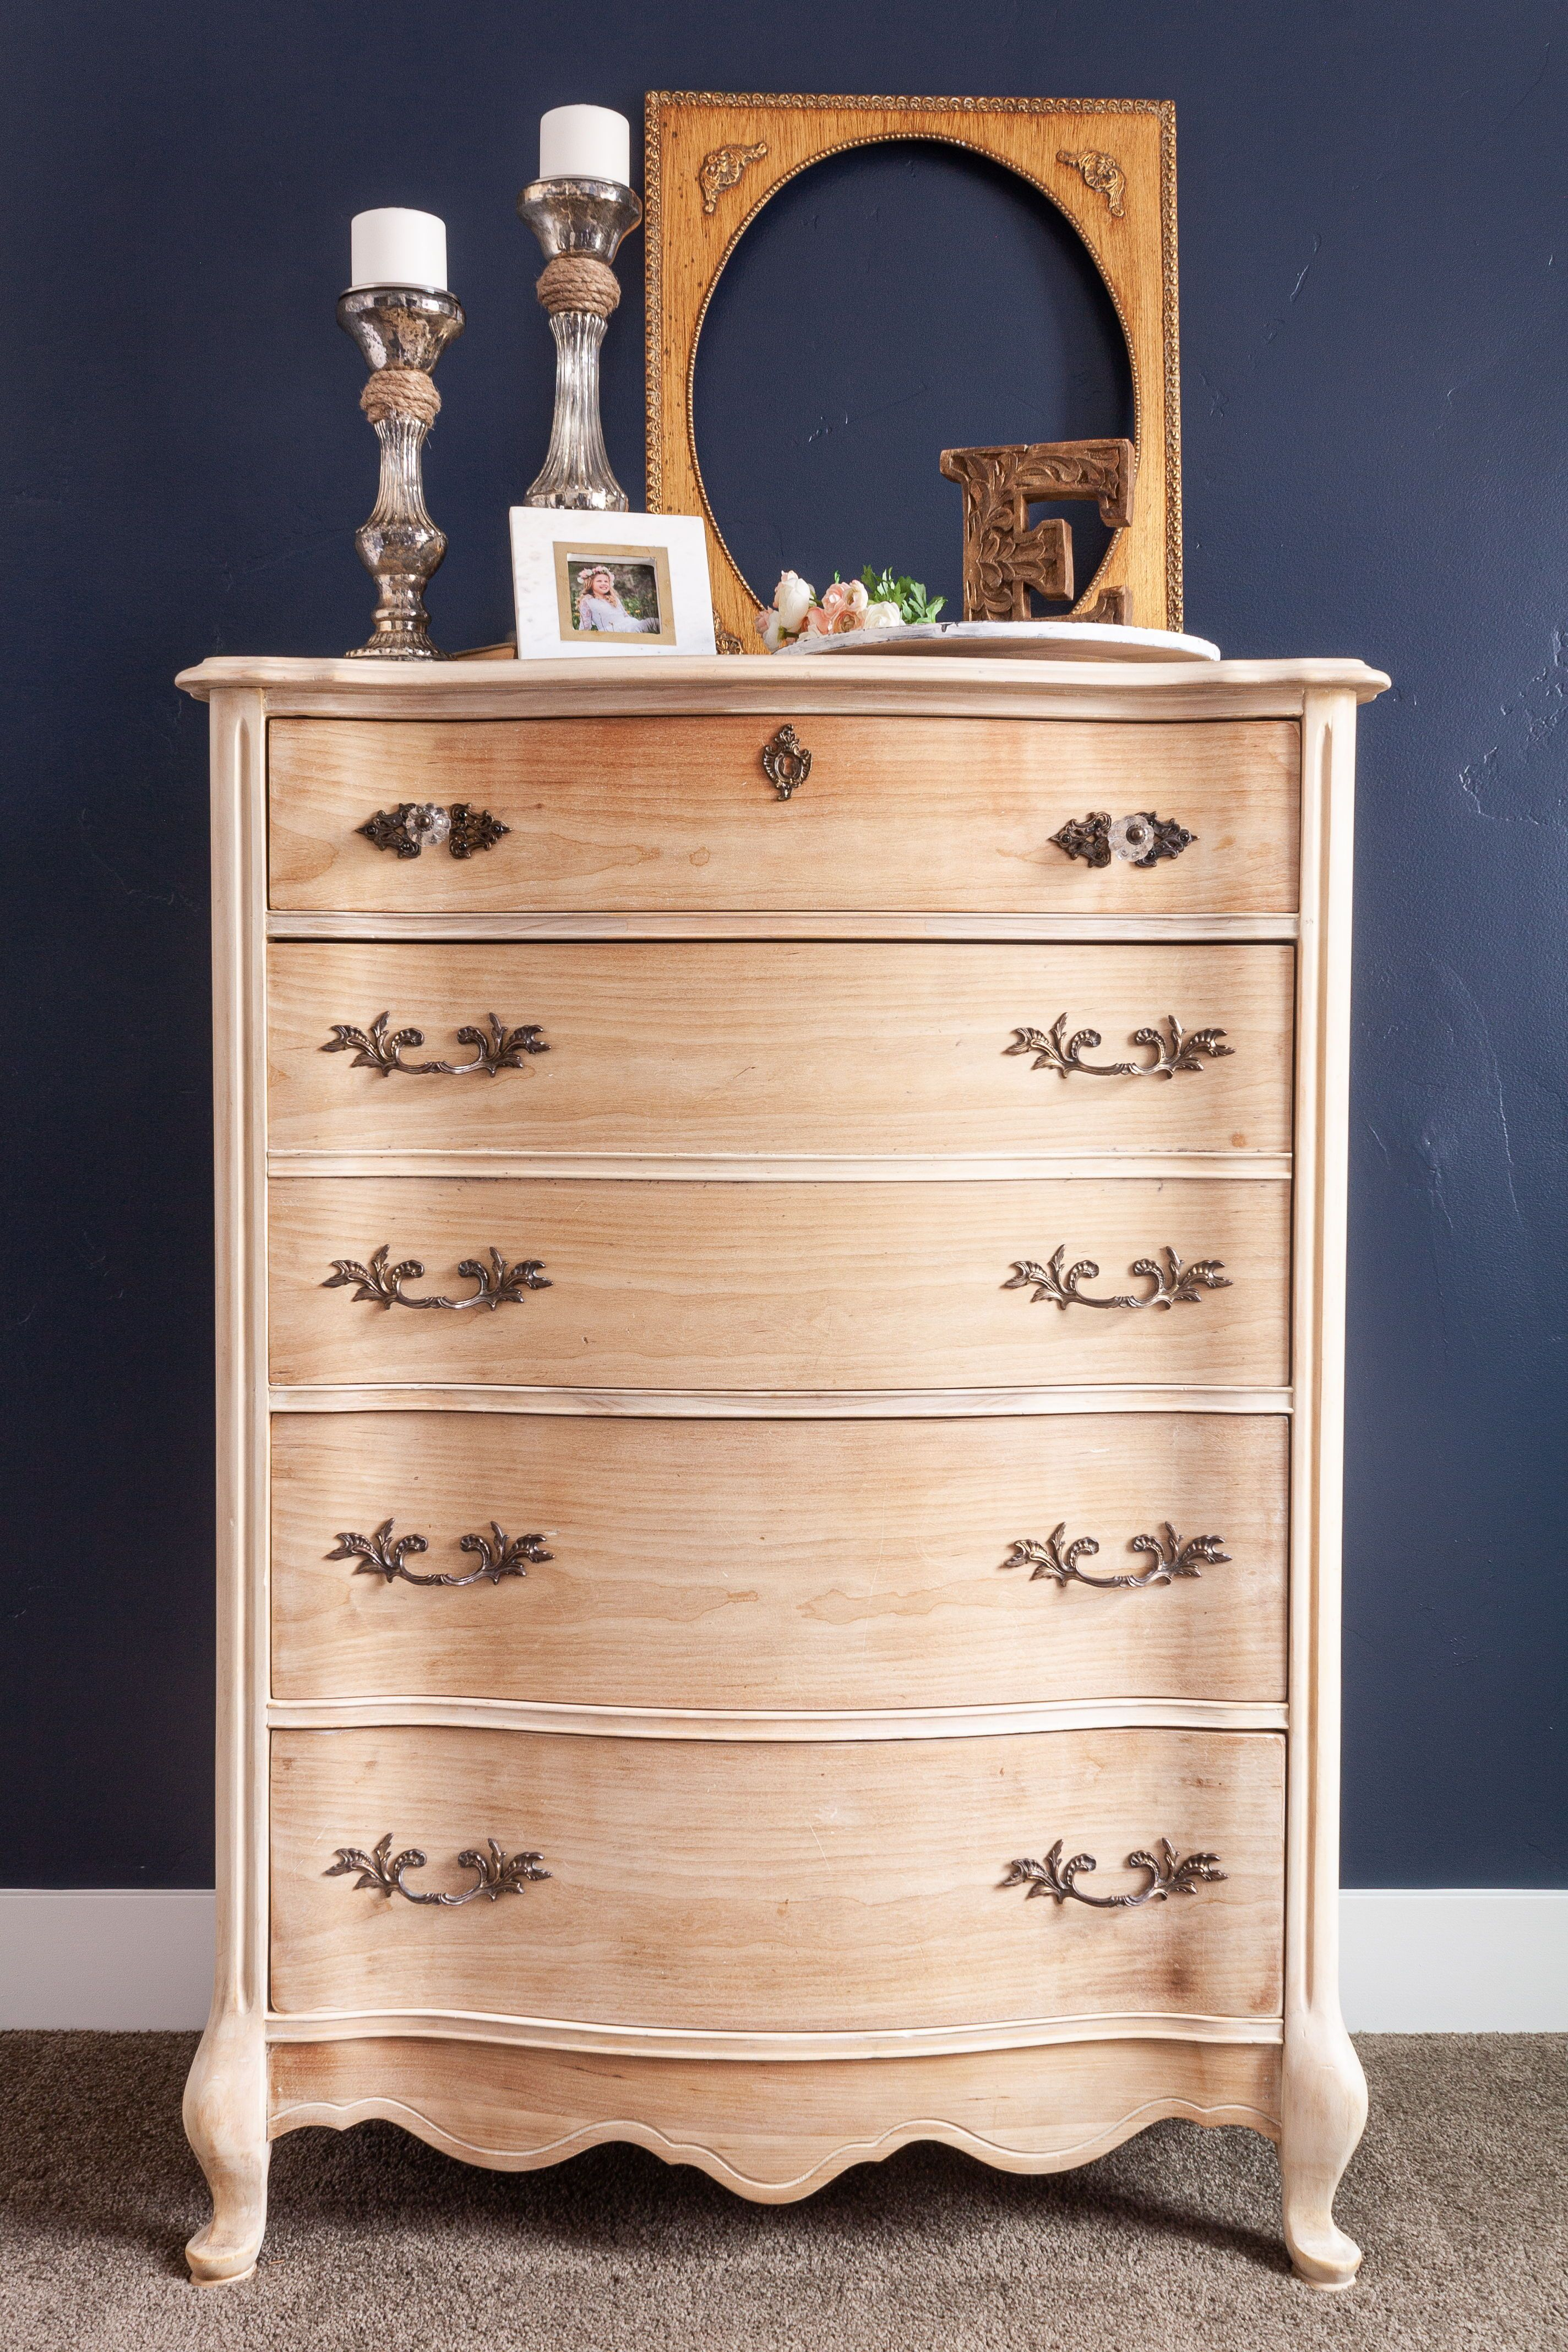 How to get a raw wood finish refinishing furniture